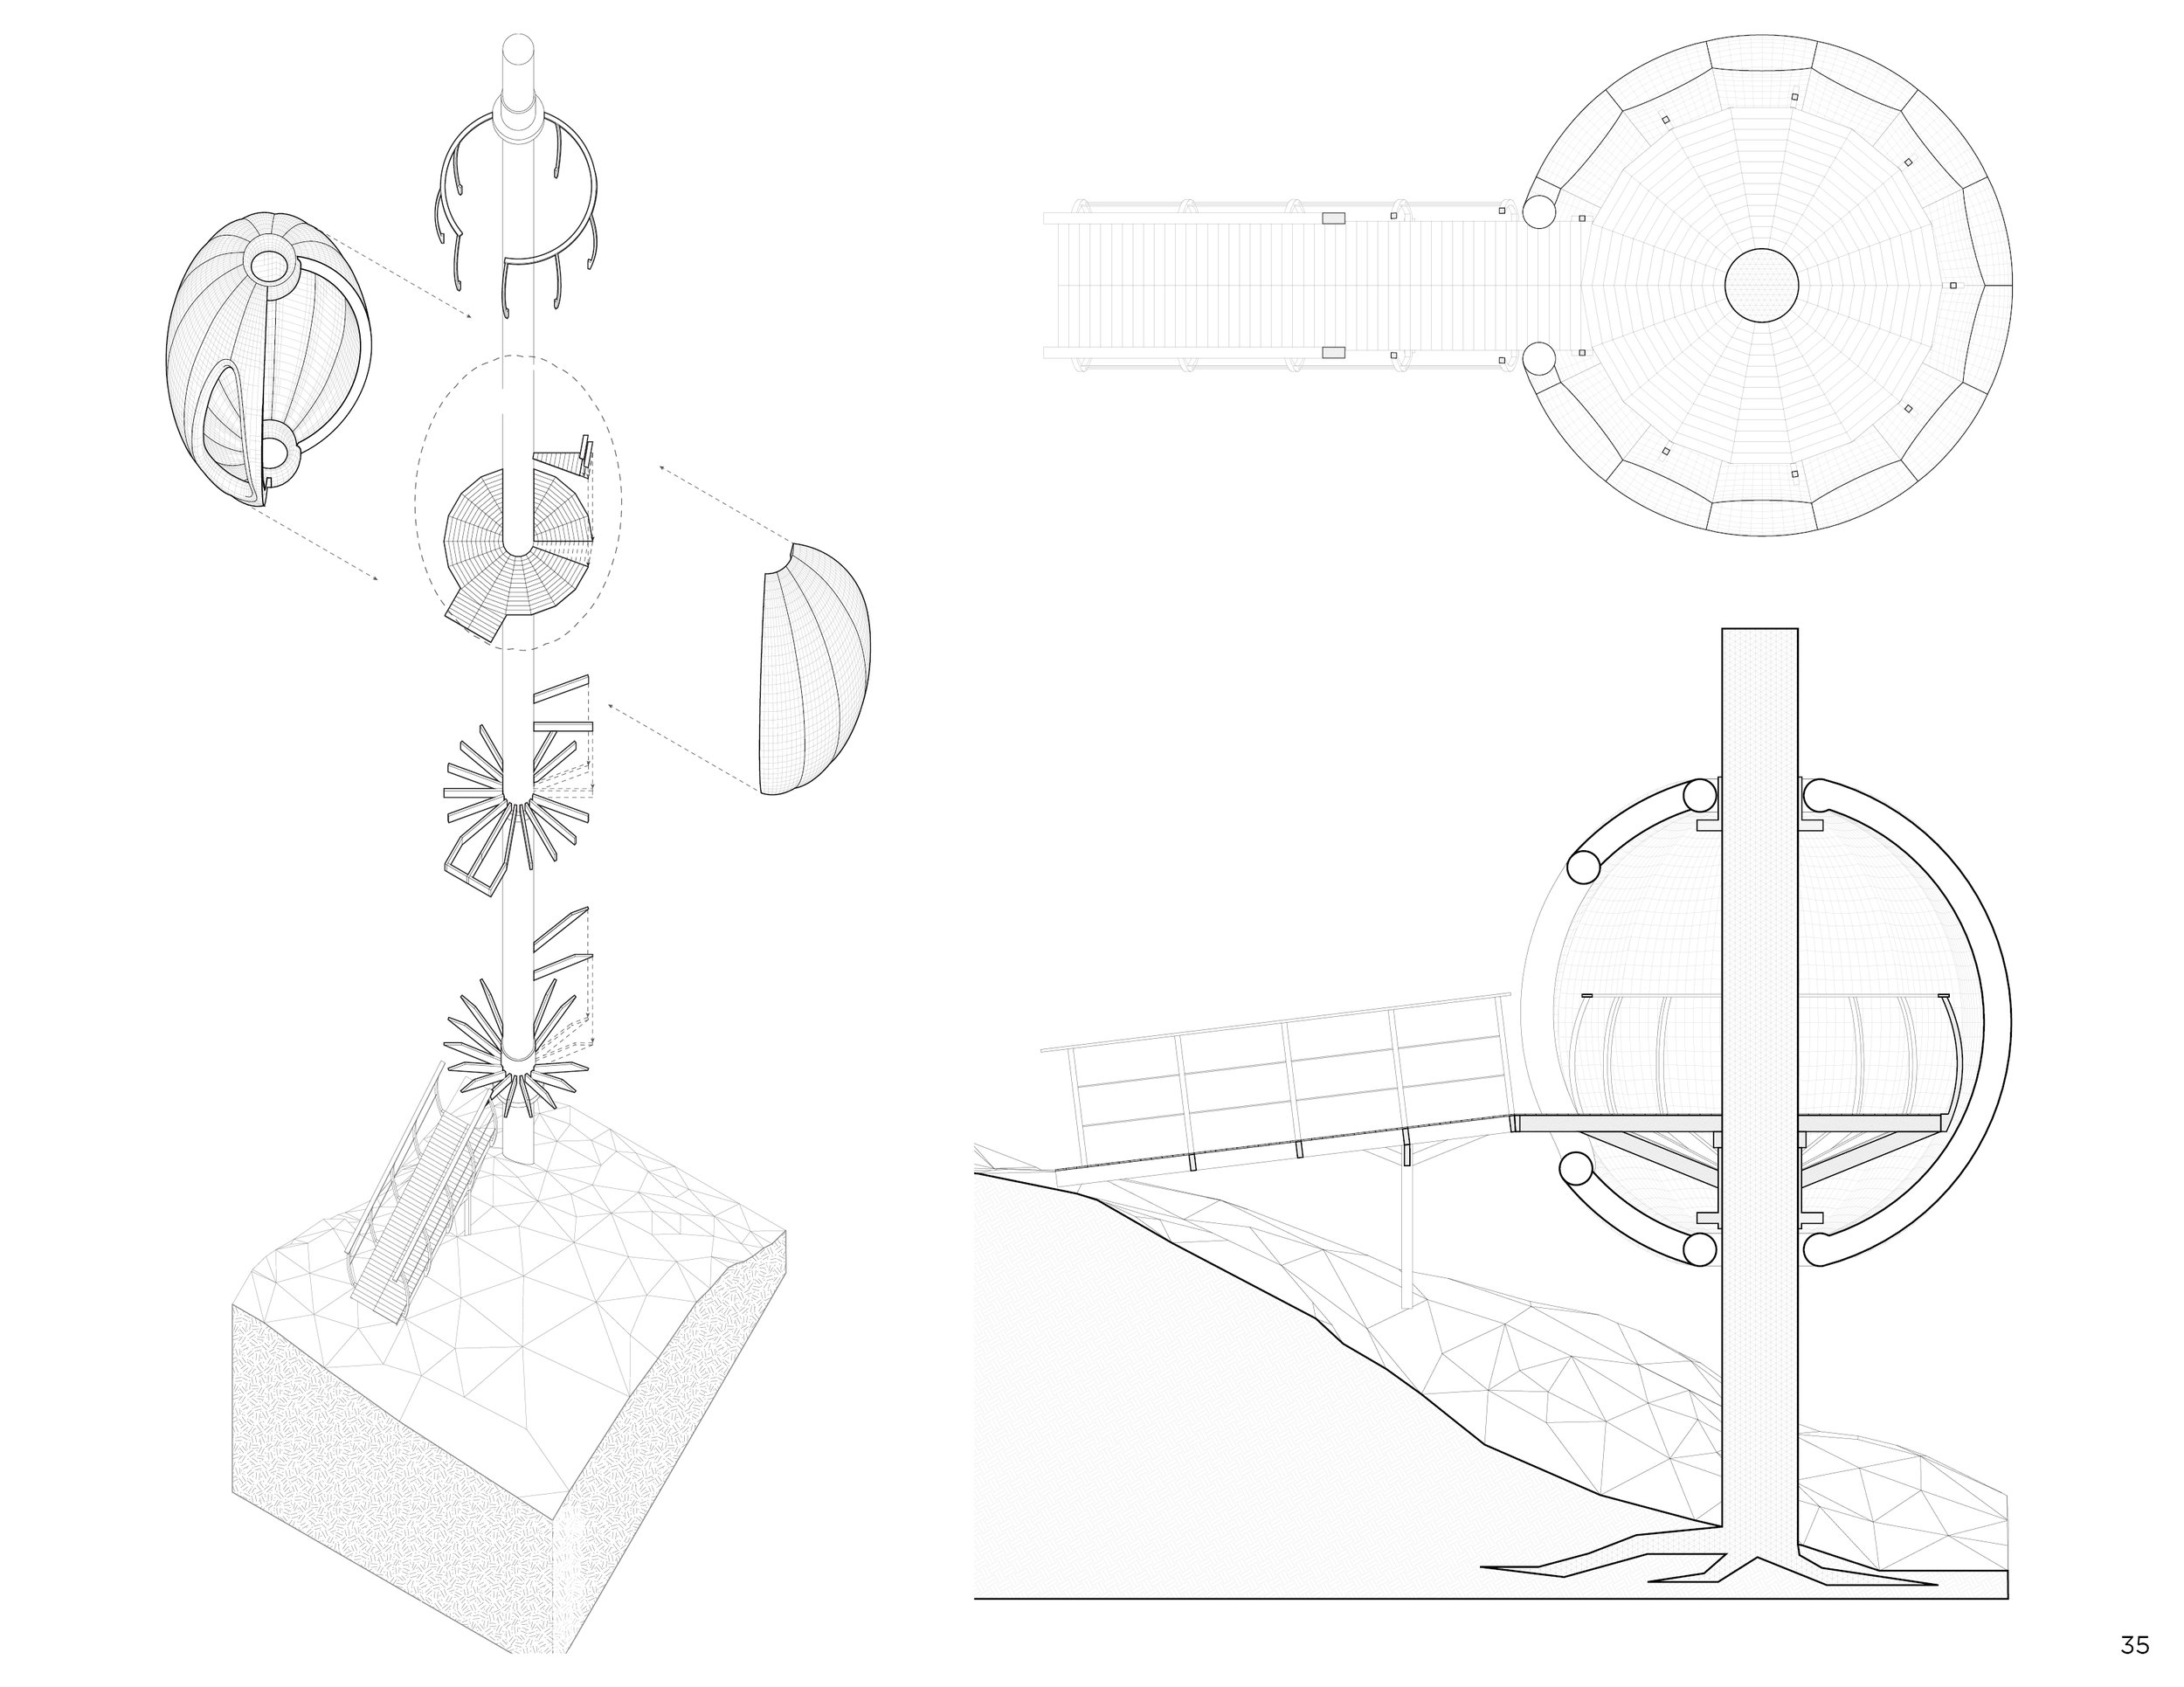 Plan, section + exploded axonometric